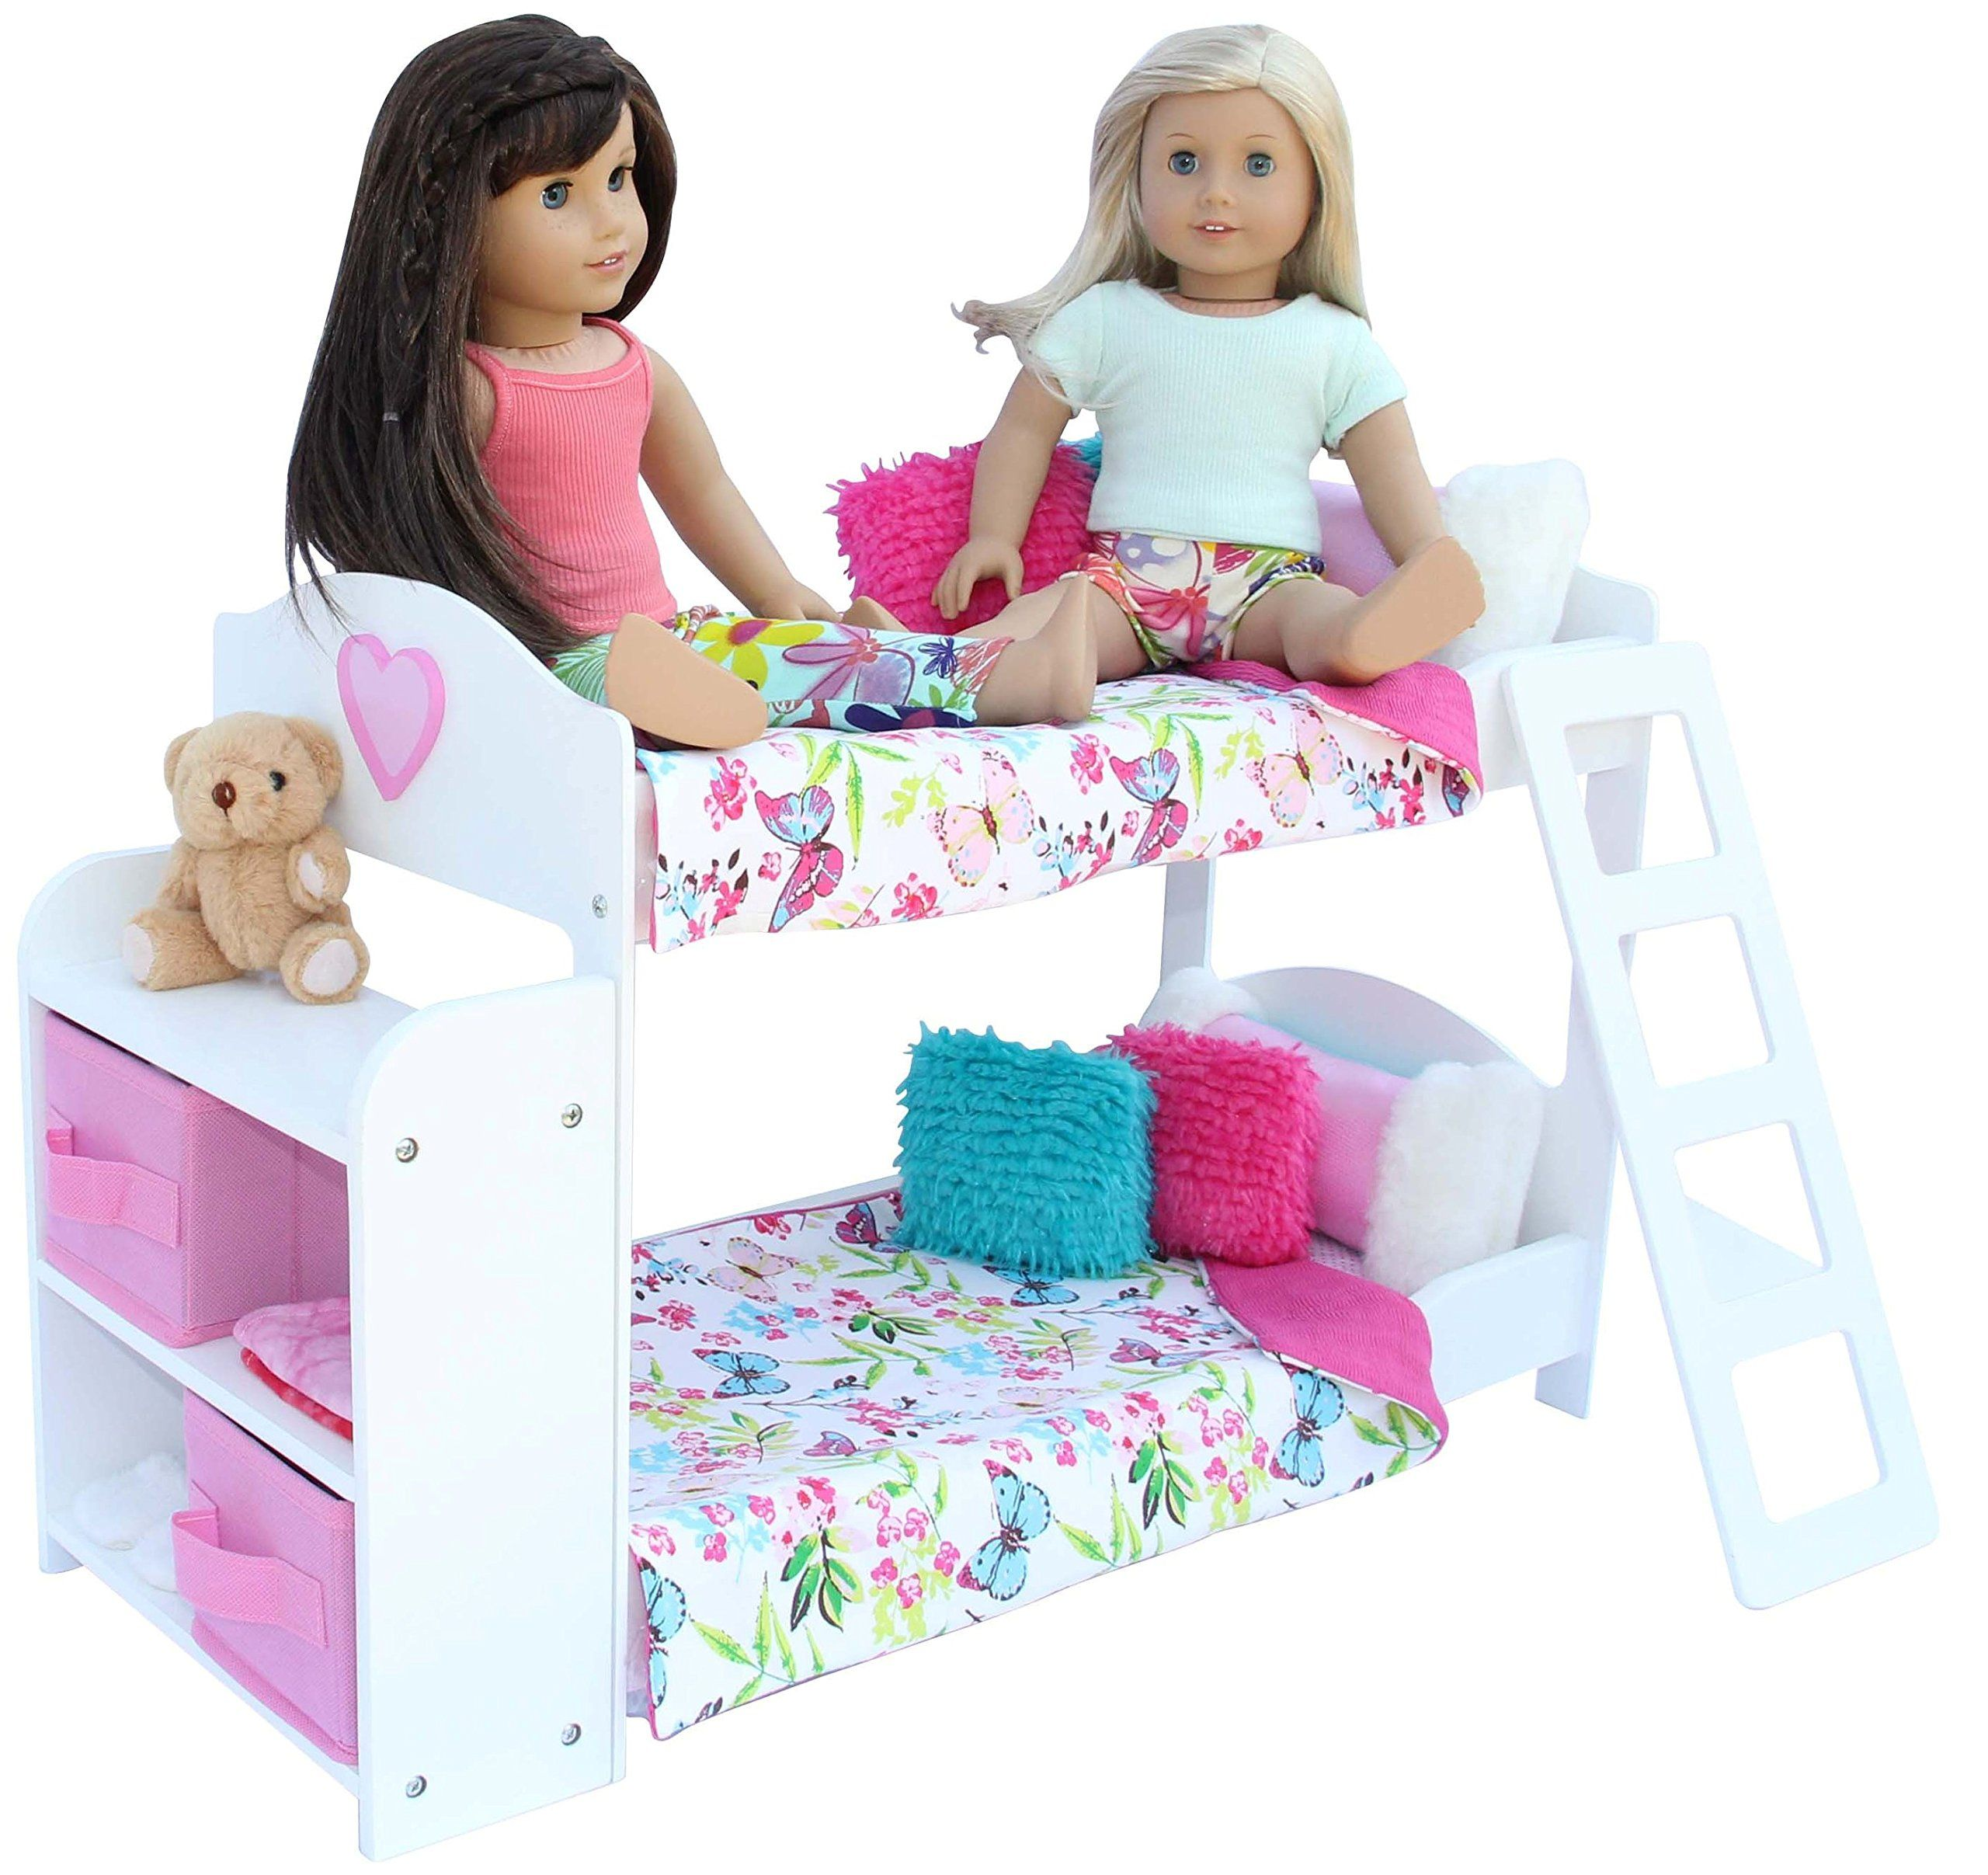 pzas toys bedroom set for 18inch american girl doll 20